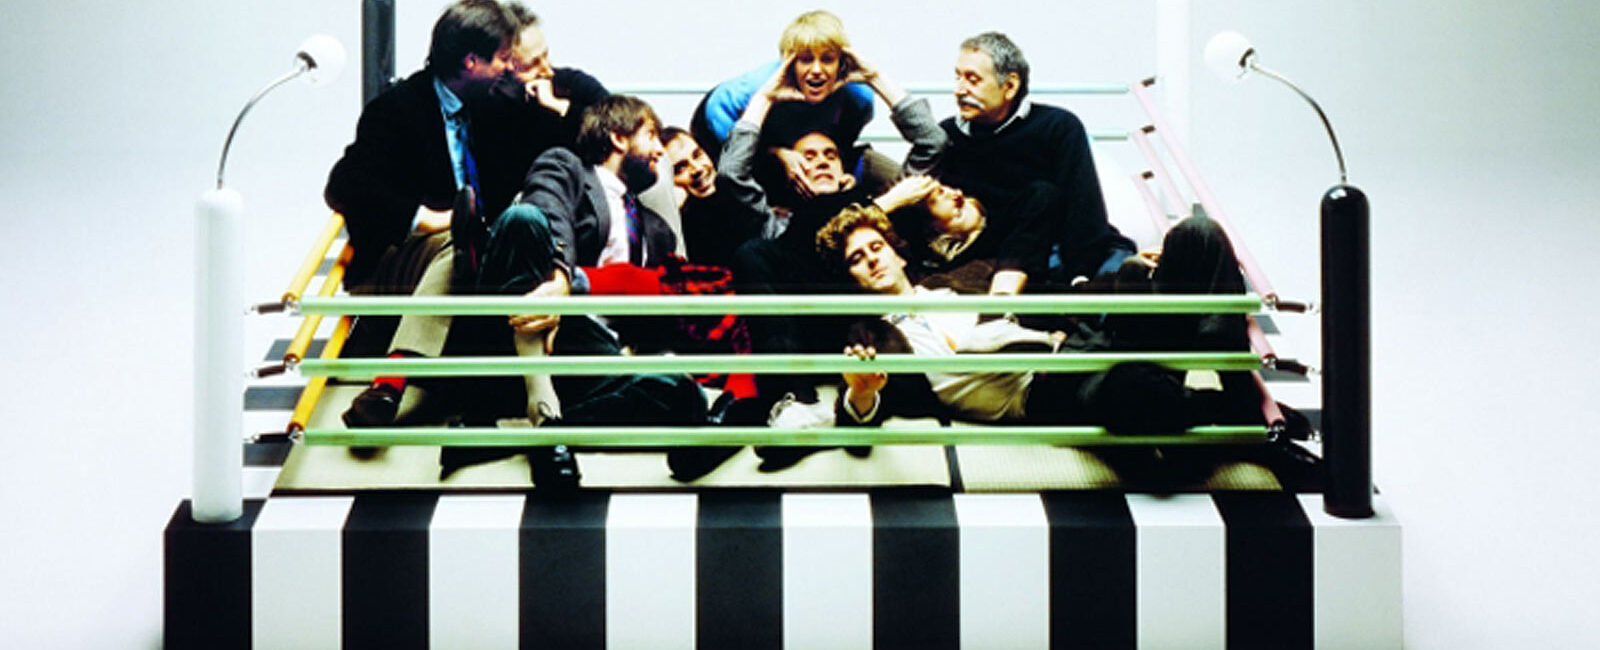 History of design: Ettore Sottsass and the Memphis group